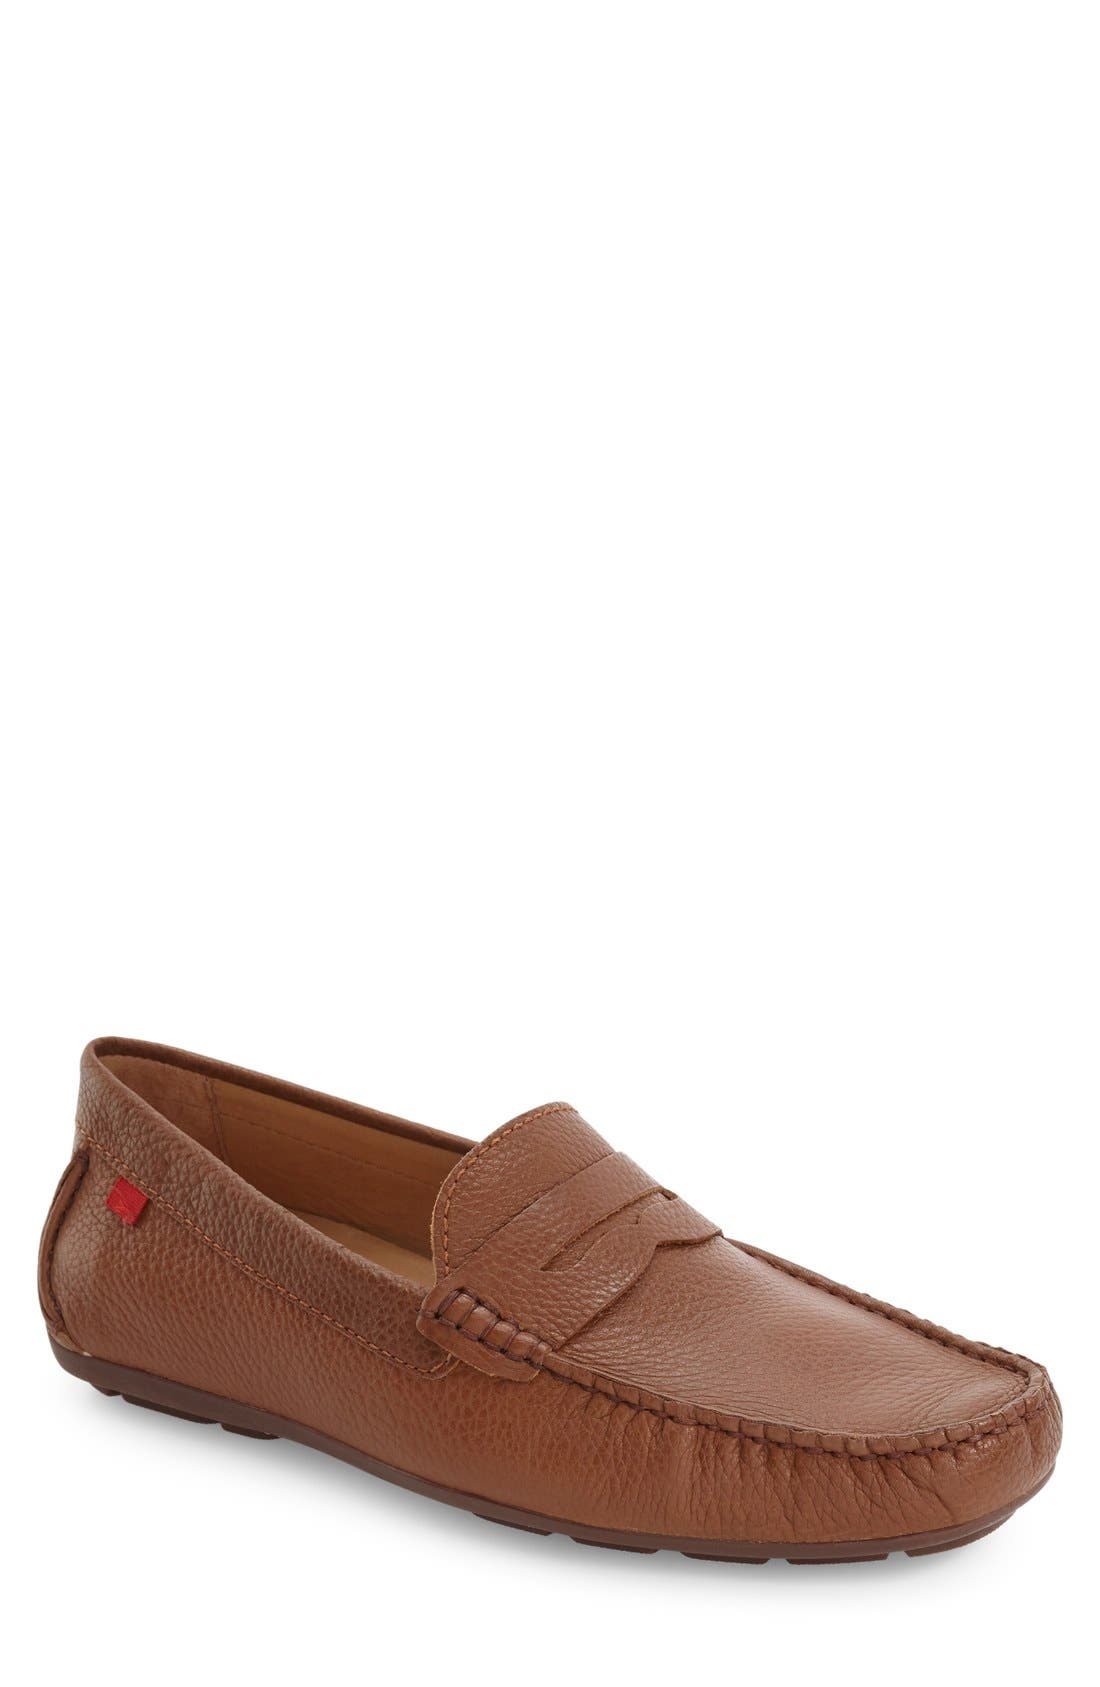 'Union Street' Penny Loafer,                             Alternate thumbnail 10, color,